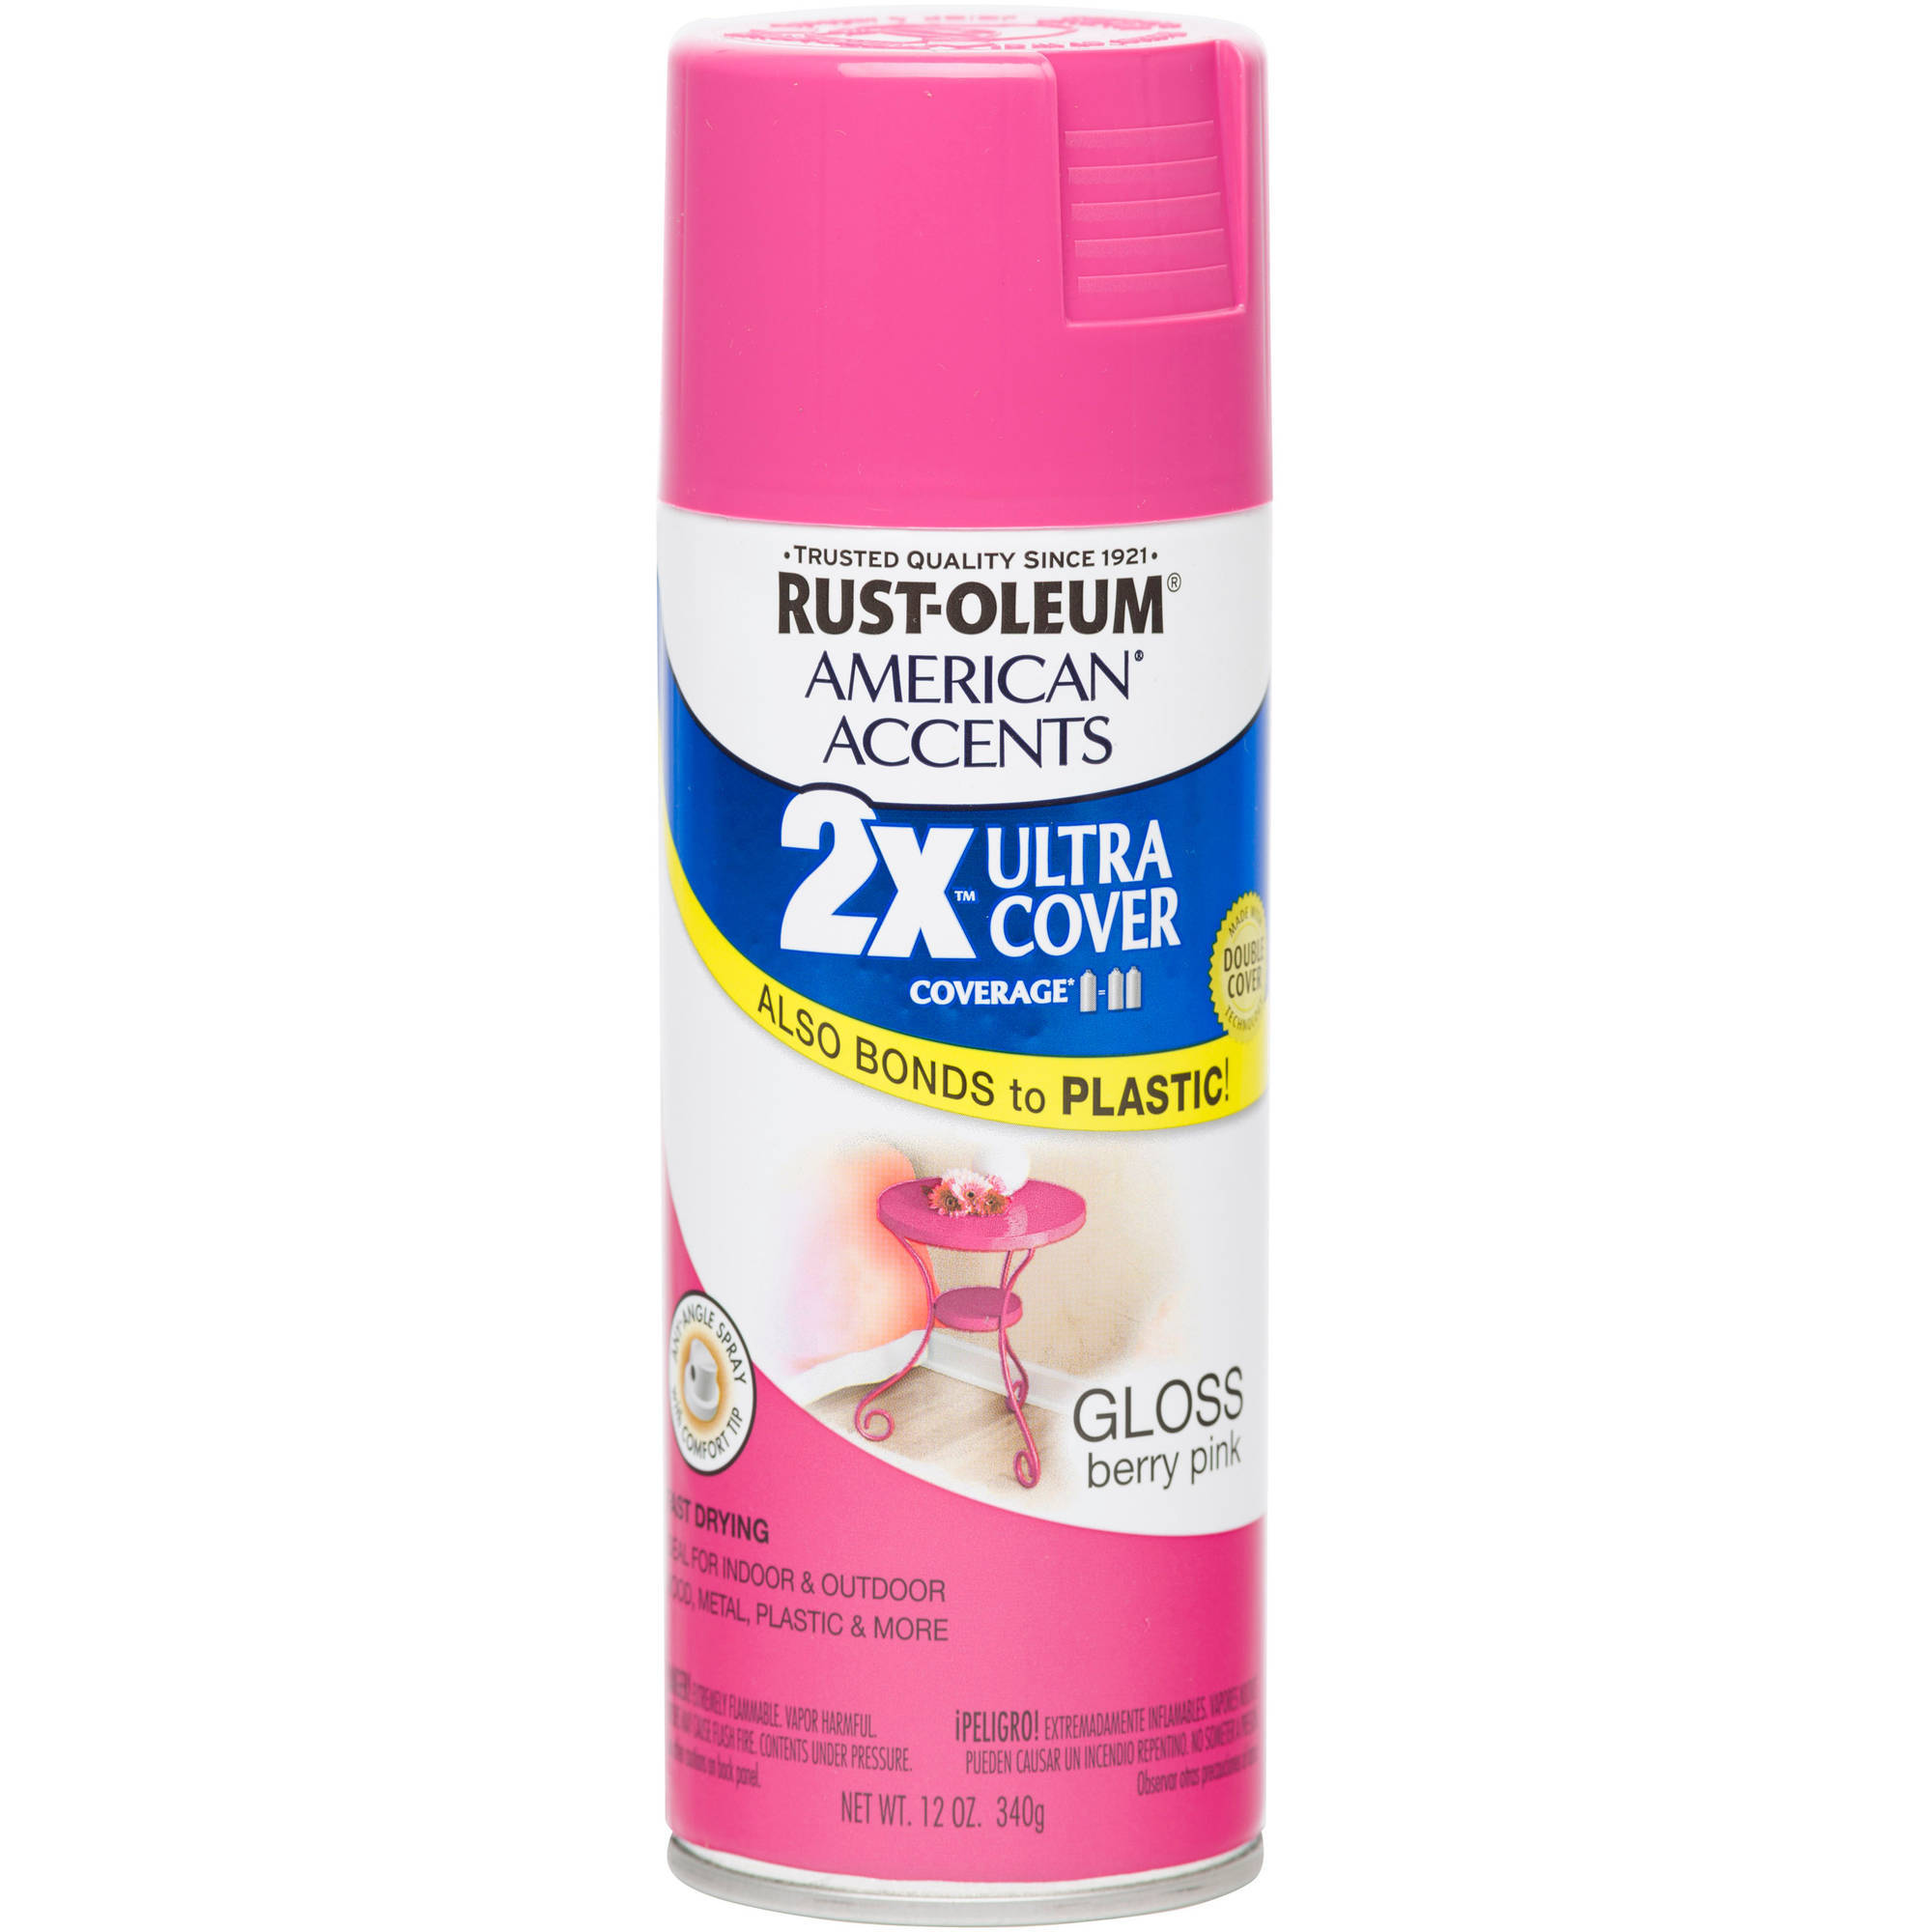 Rust-Oleum American Accents Ultra Cover 2X Gloss Berry Pink Spray Paint and Primer in 1, 12 oz